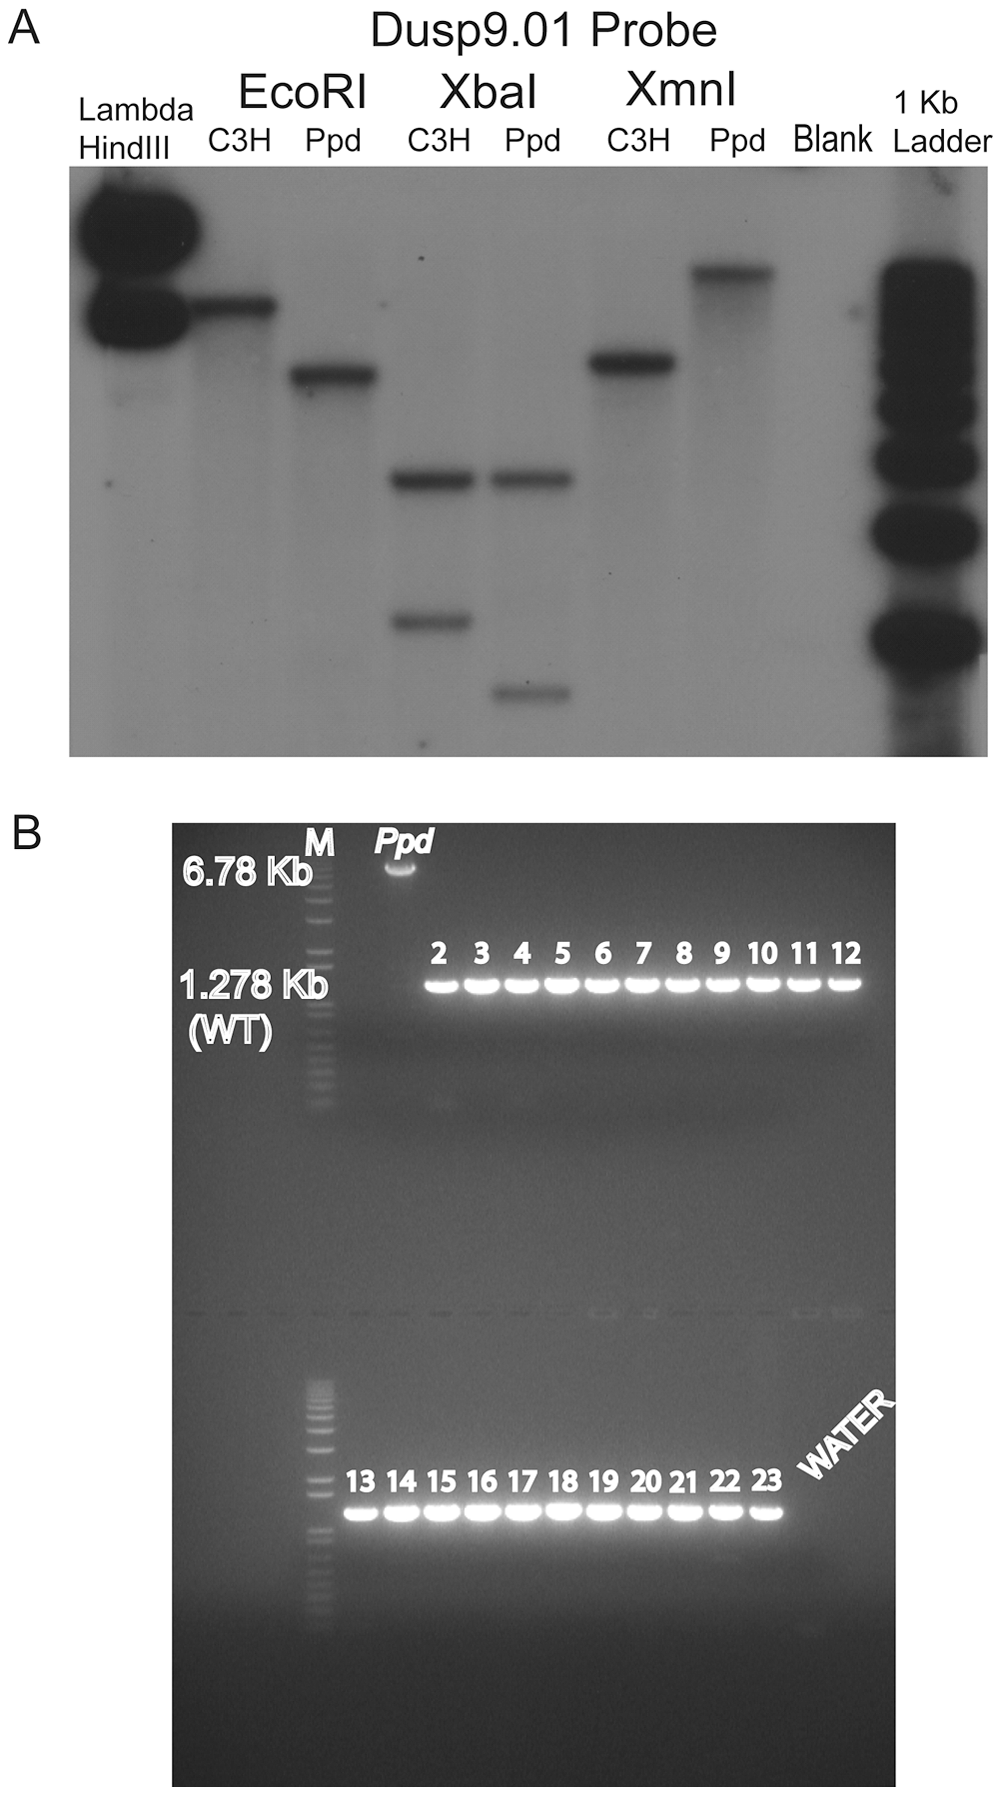 A novel DNA insertion mutation within the <i>Ppd</i> genetic interval.